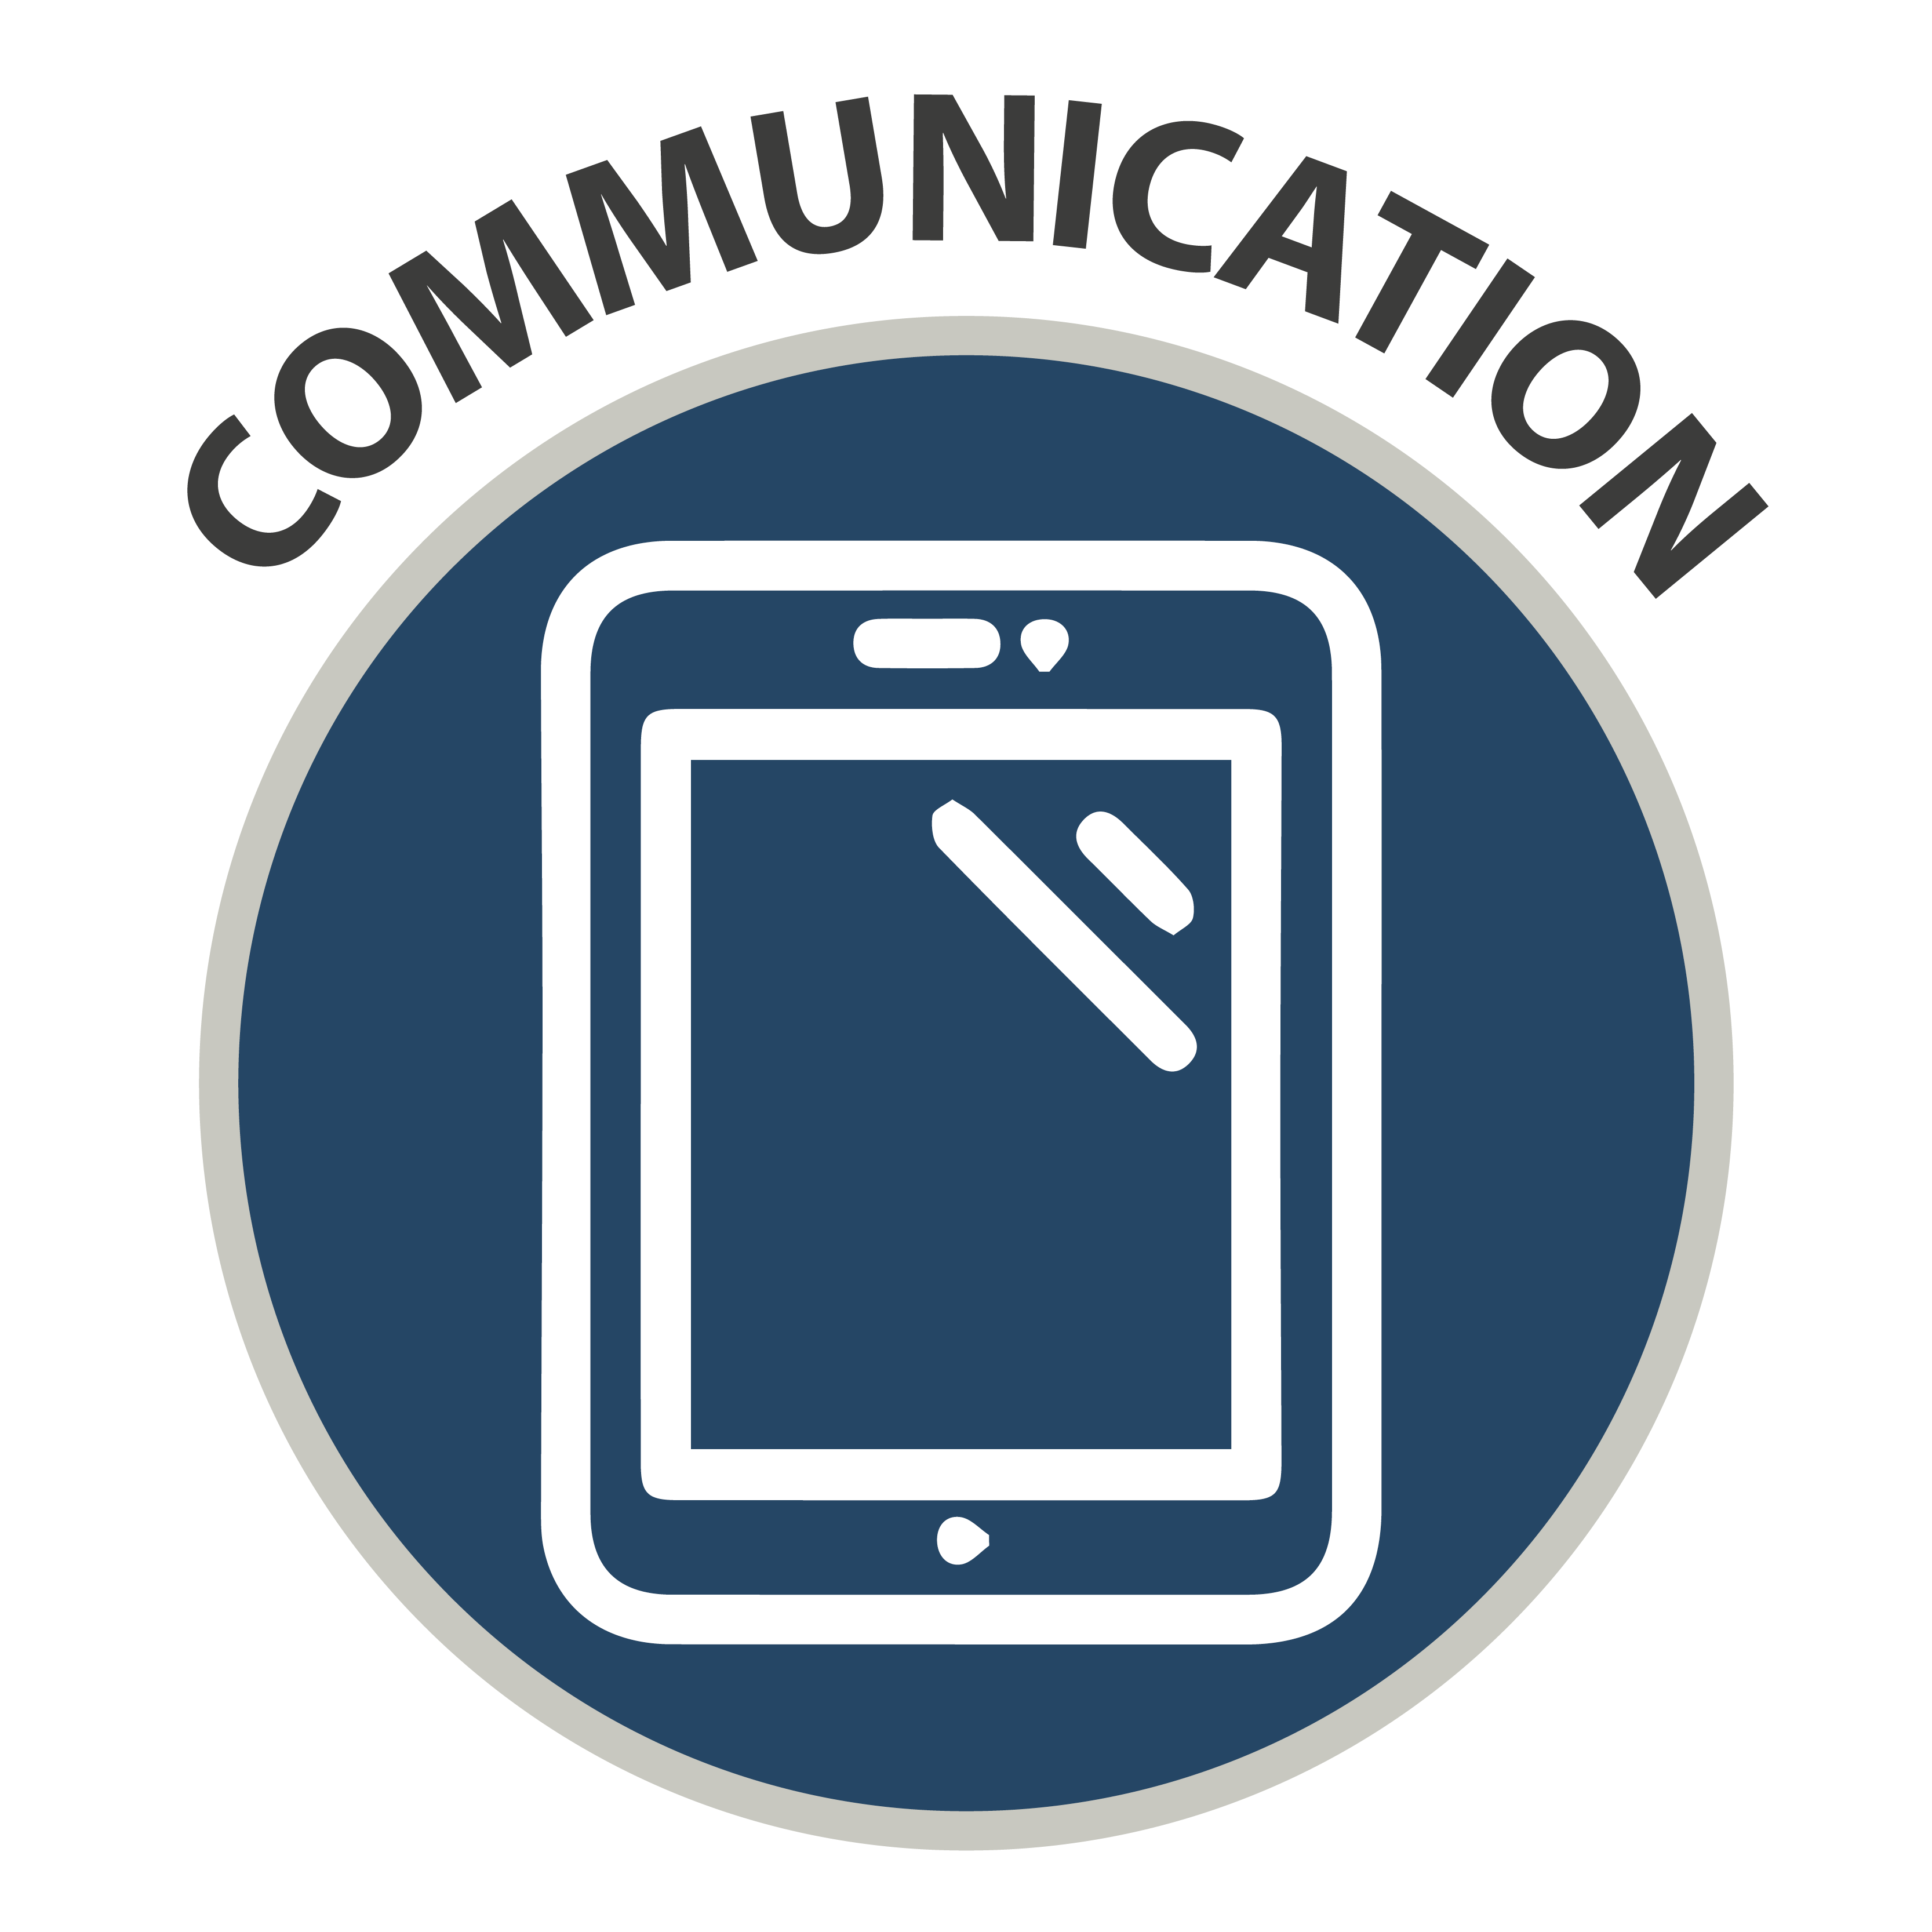 Communication - icon of tablet device